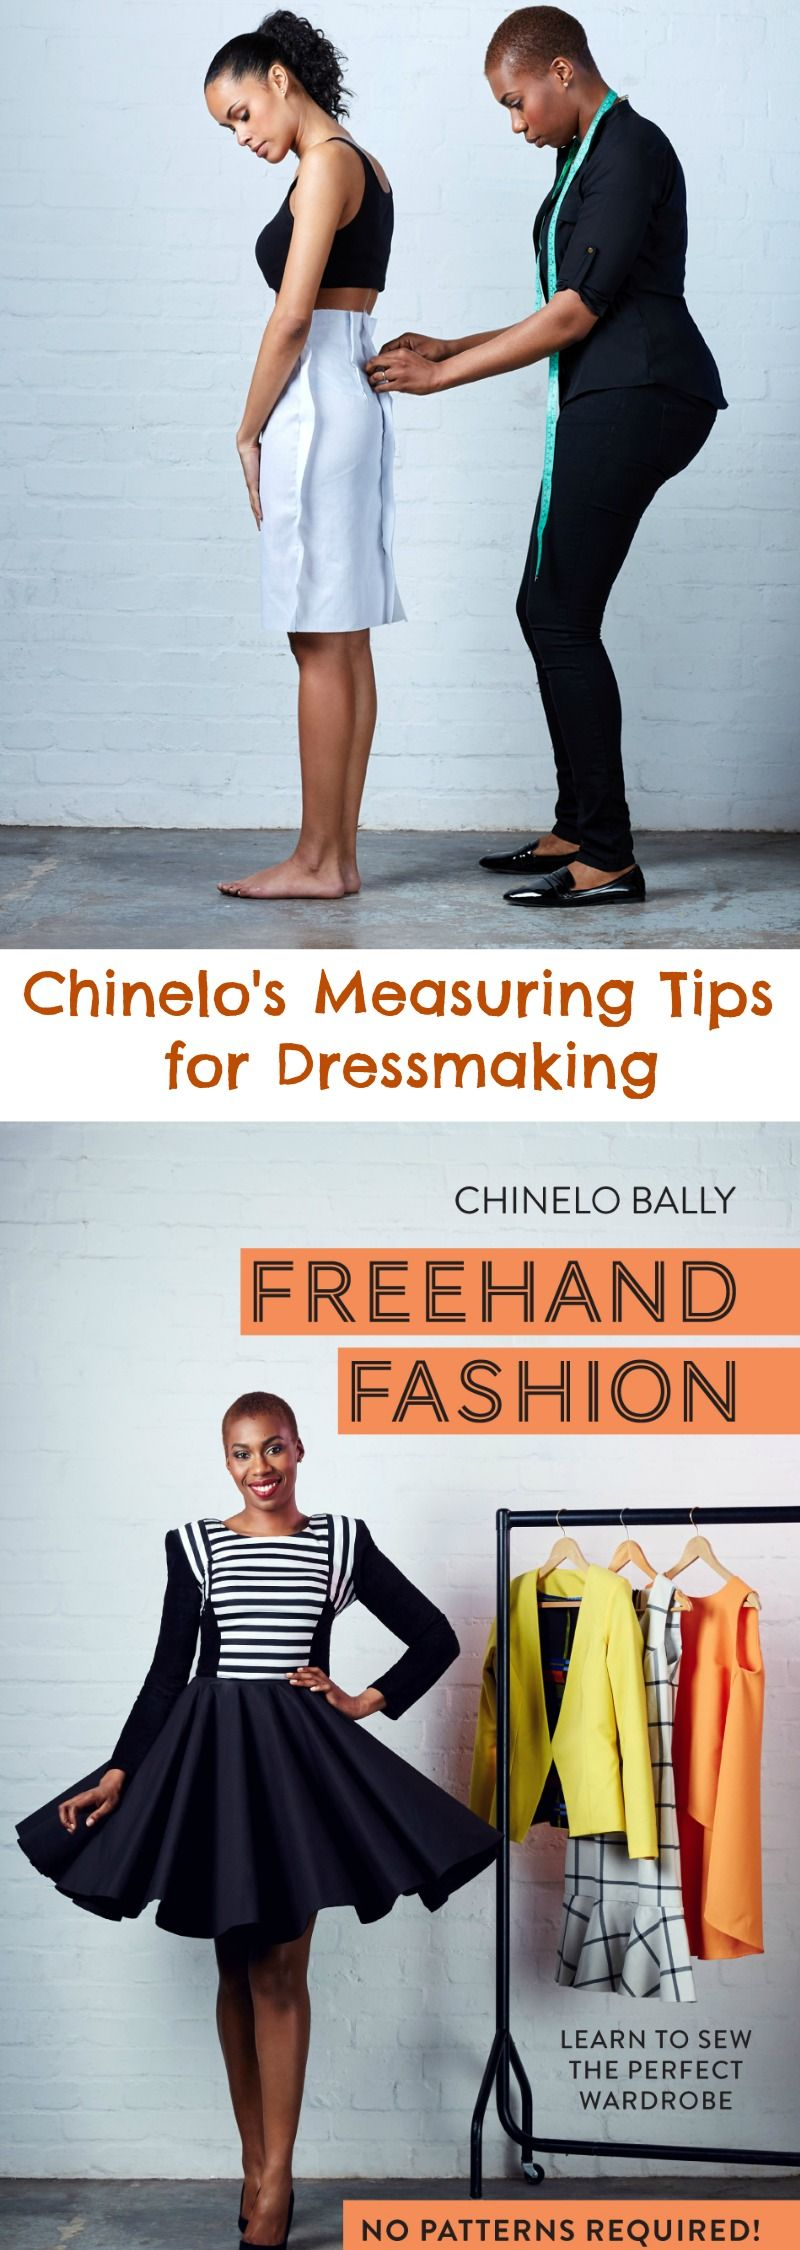 Exclusive Measuring Tips For Dressmaking From Chinelo Bally Dressmaking Sewing Patterns Free Sewing Projects For Beginners